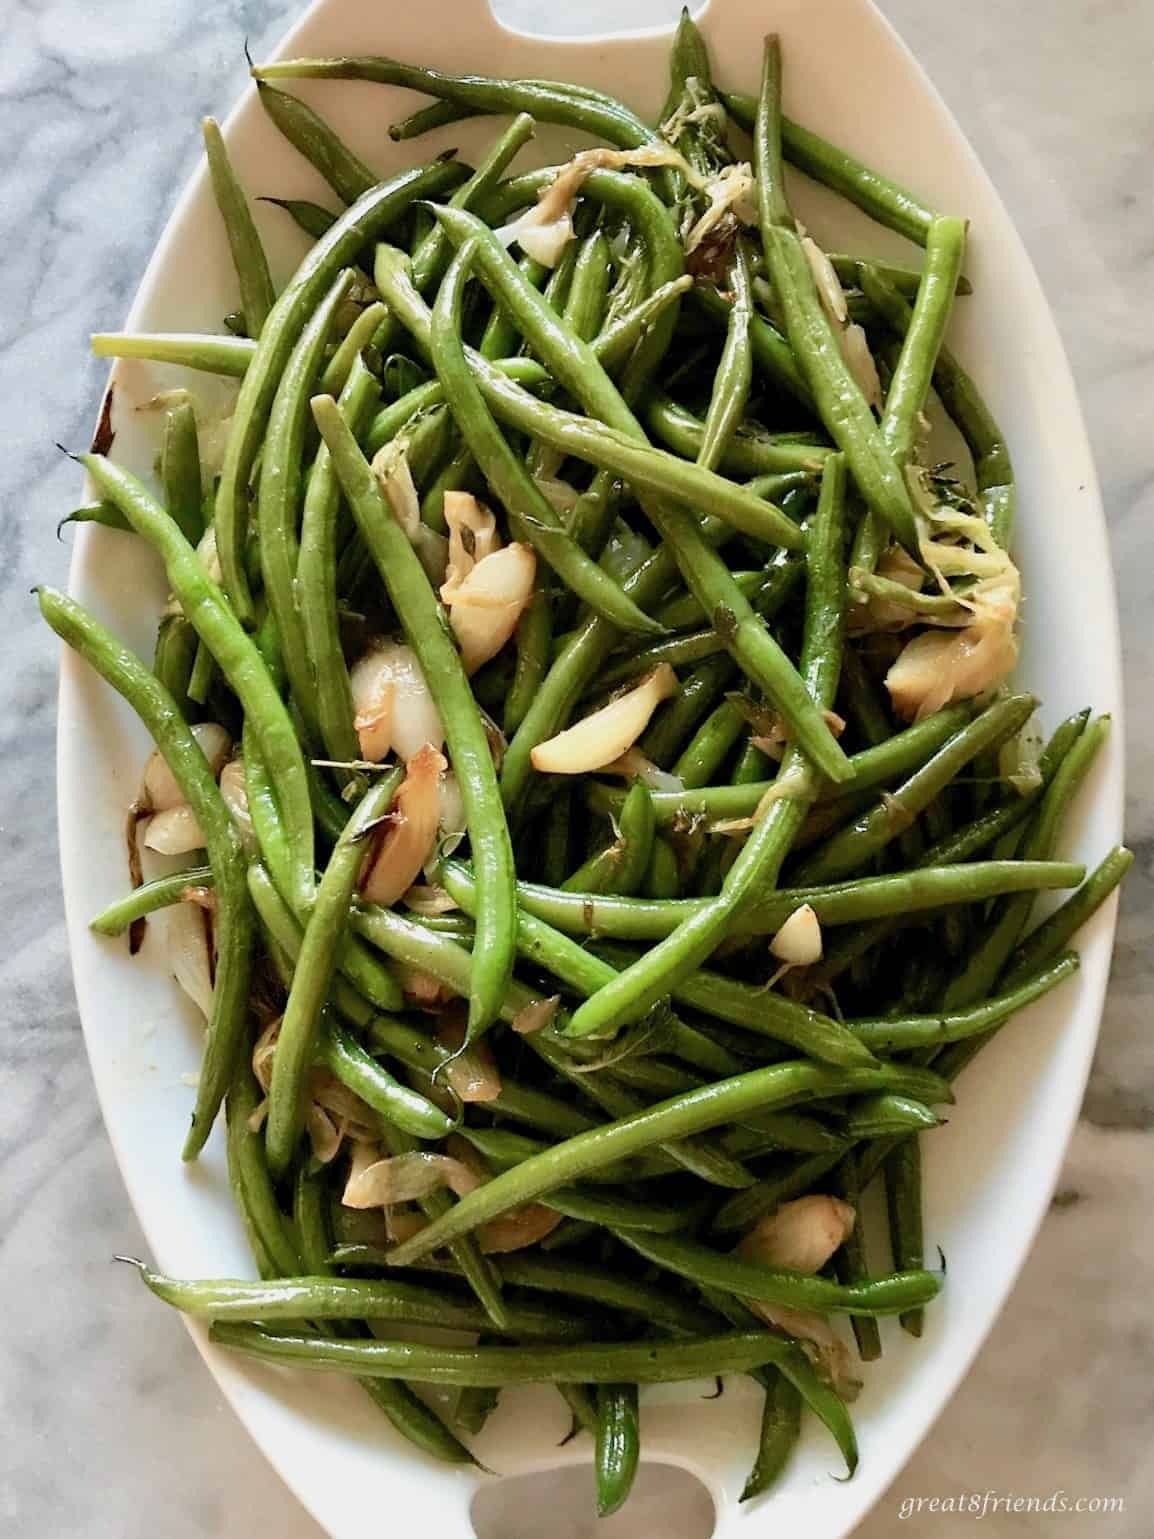 Here is a Great Green Bean and Onion dish that you can be sure to love more each time you make it! Perfect side dish for any meal!